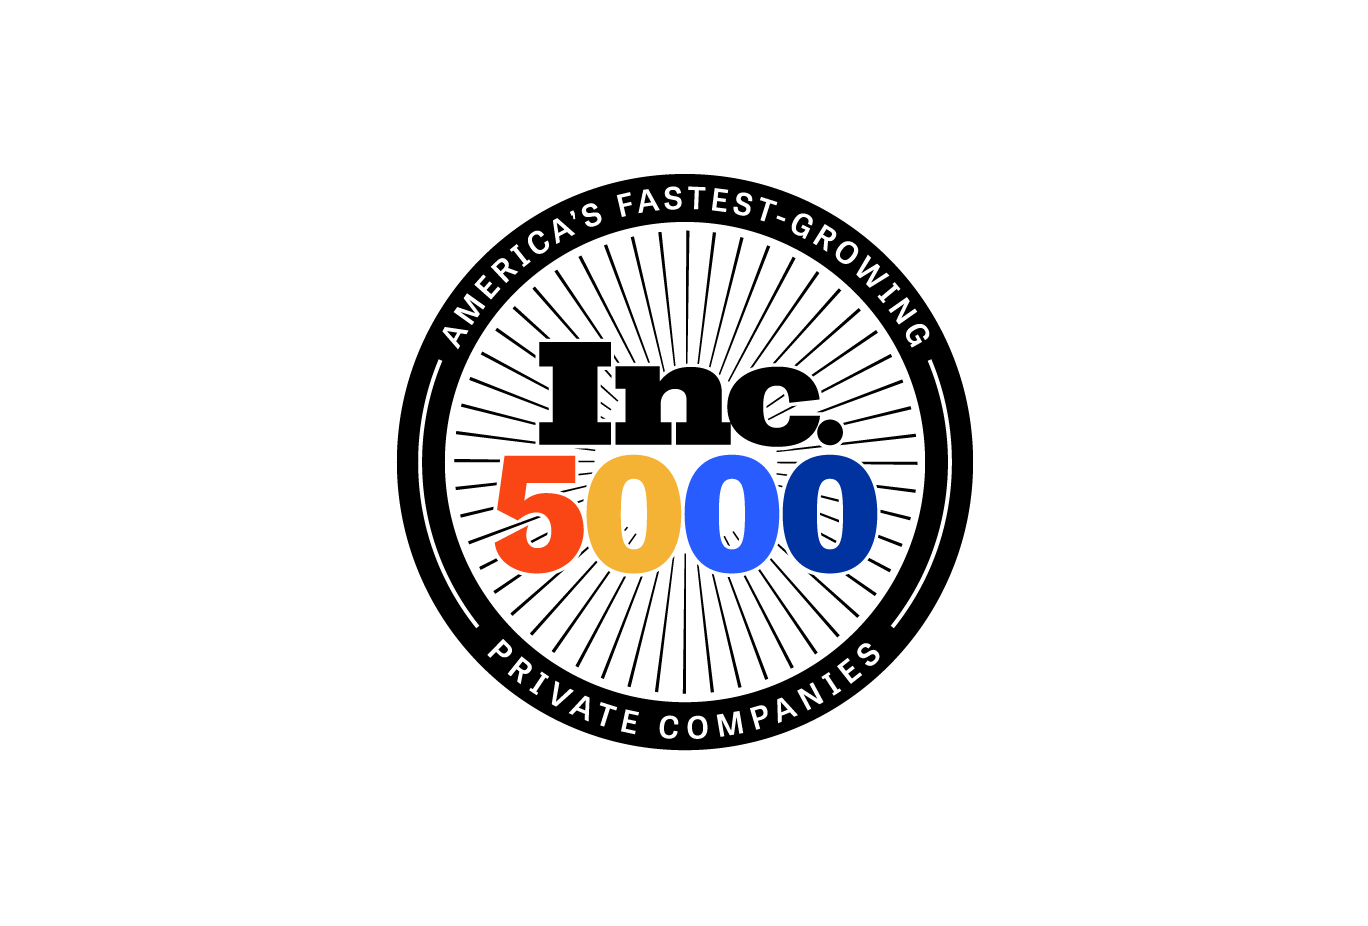 Unacast ranks as one of the fastest growing companies in the US on the Inc. 5000